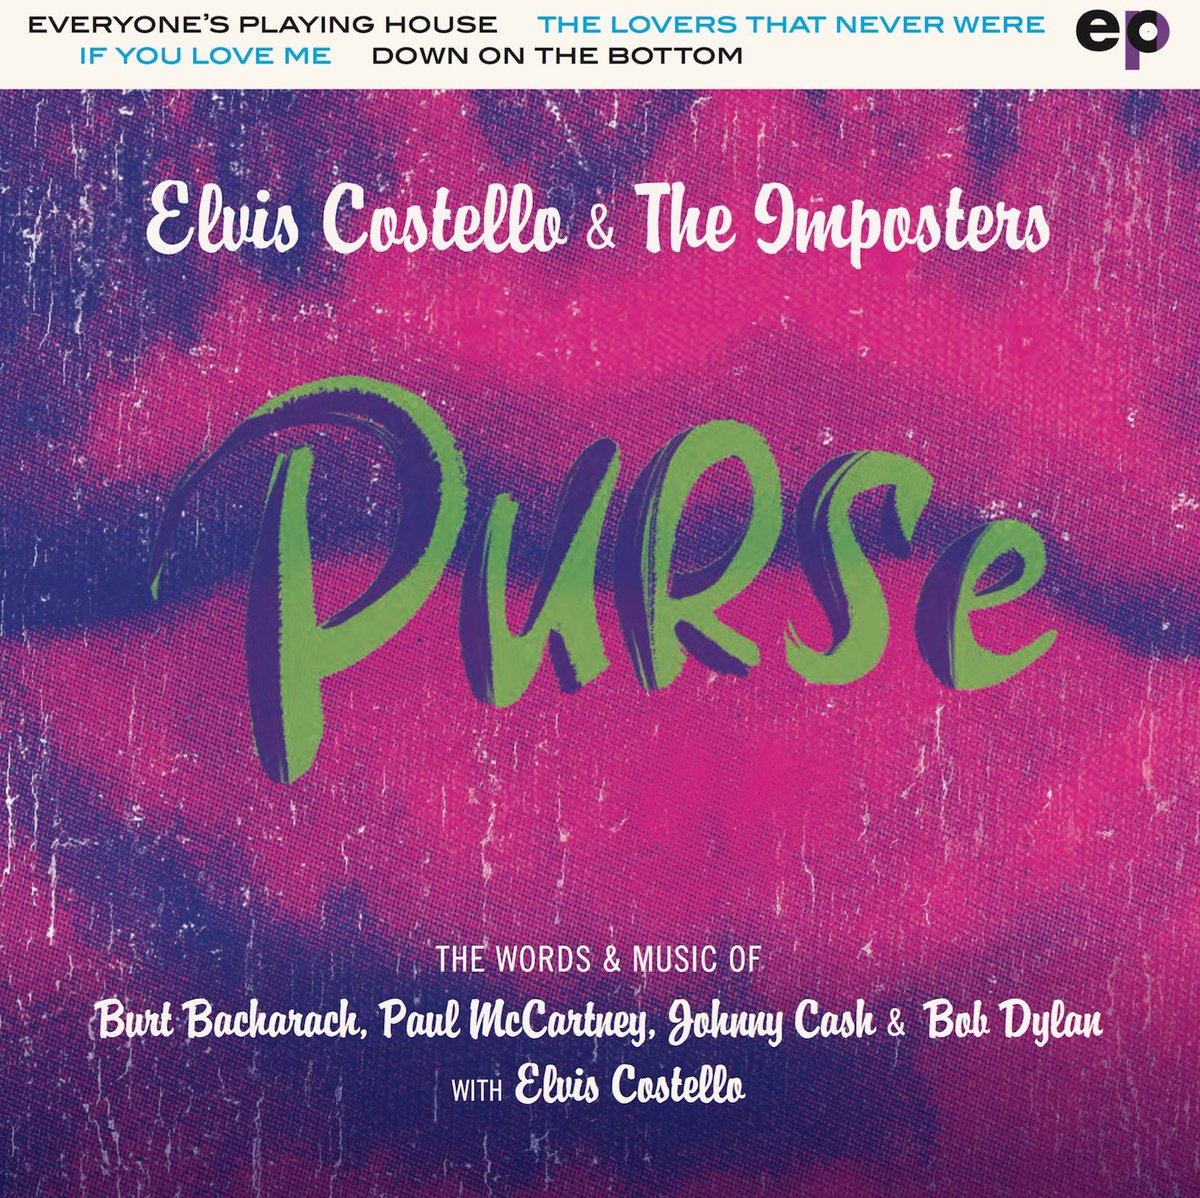 Elvis Costello & The Imposters: Purse